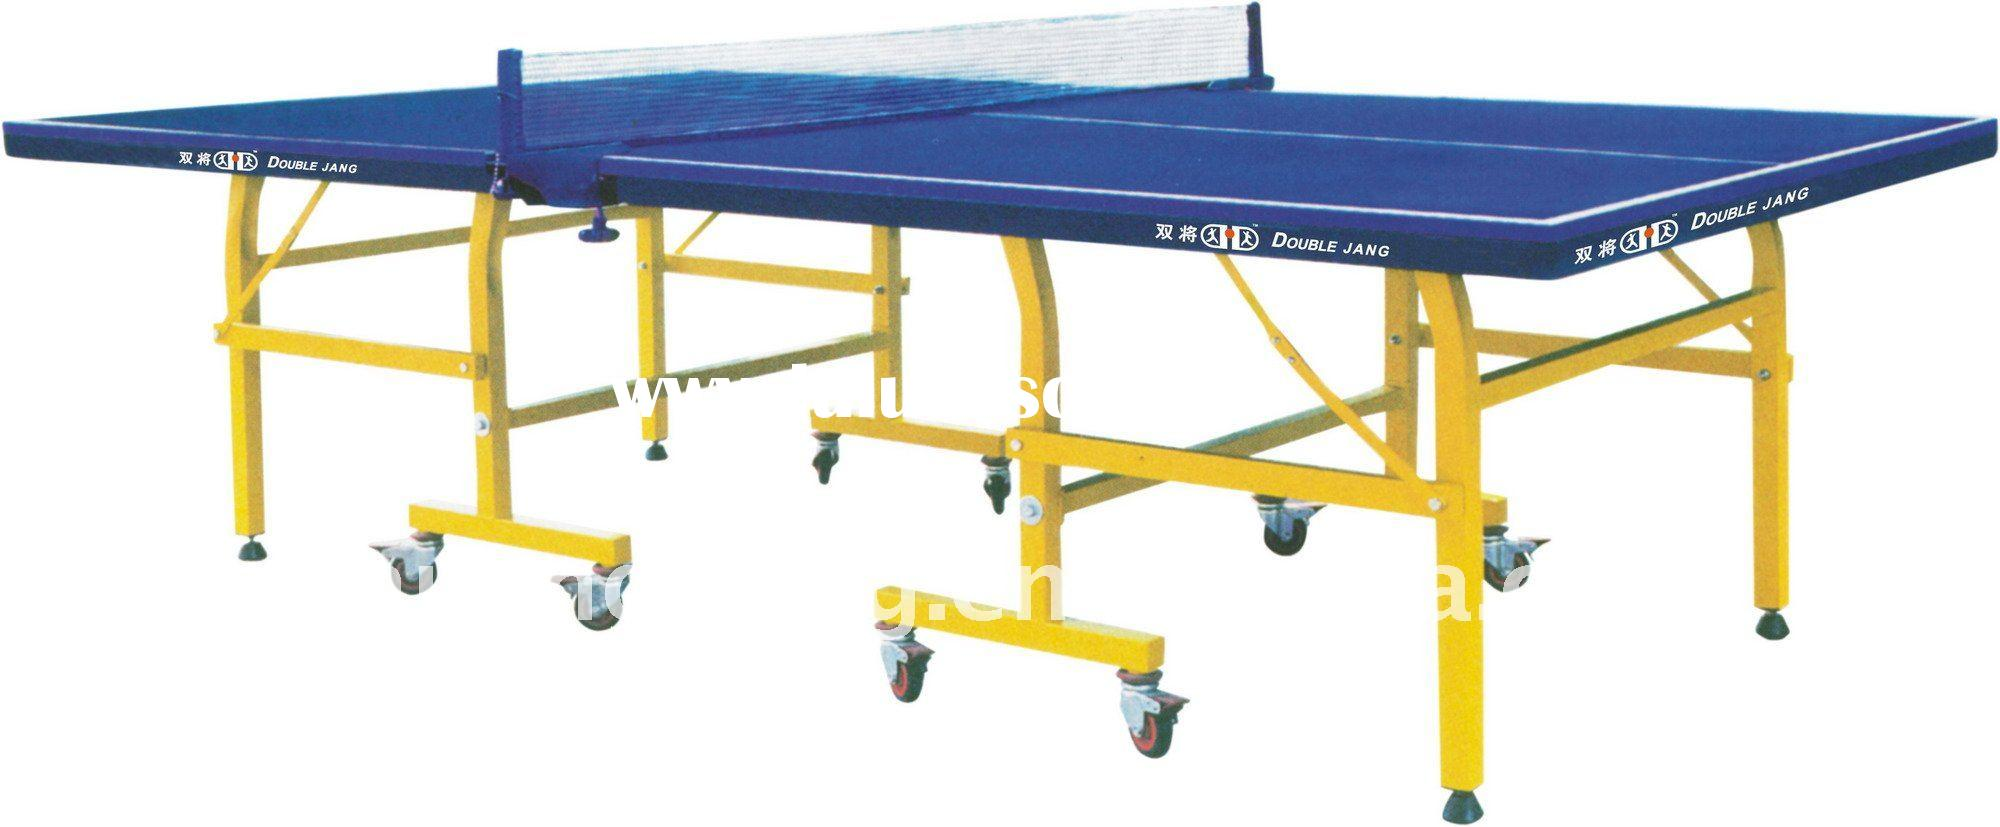 (SJ-213 )Interior Table Tennis equipment,Single Folding outdoor table tennis